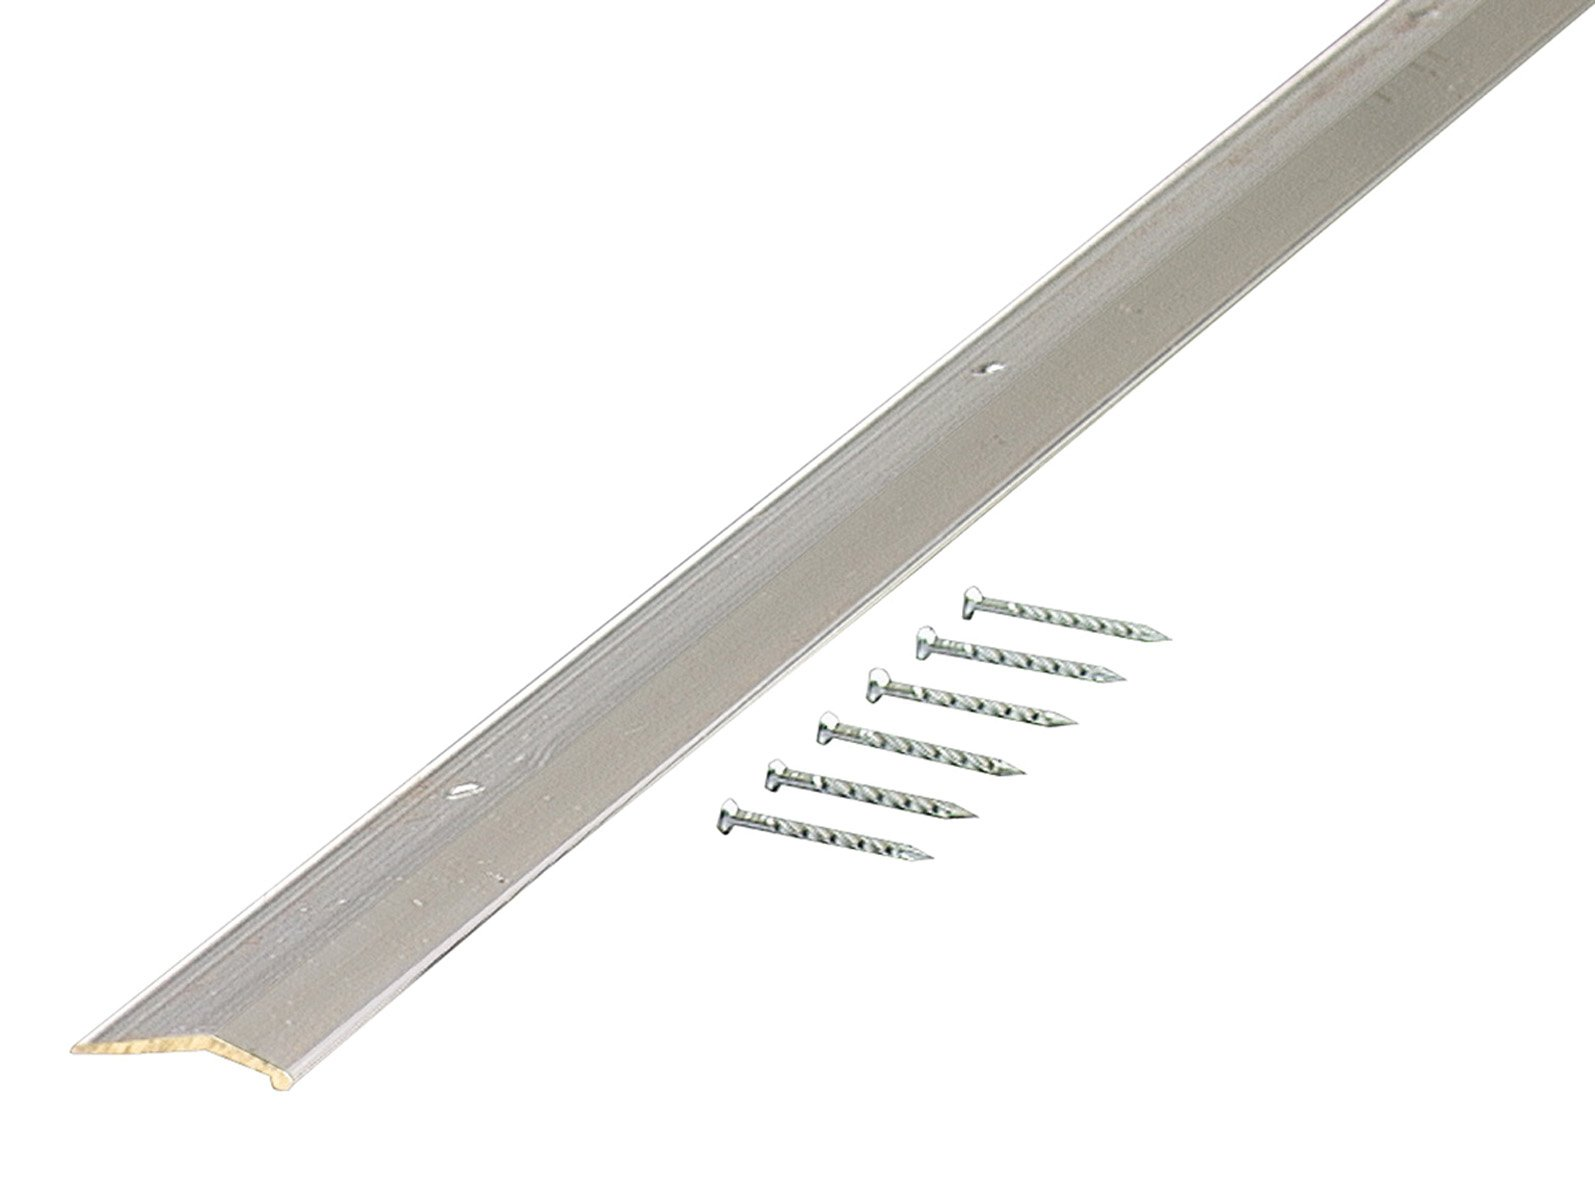 M-D Building Products 66472 1-3/8-Inch by 72-Inch Carpet Trim Smooth